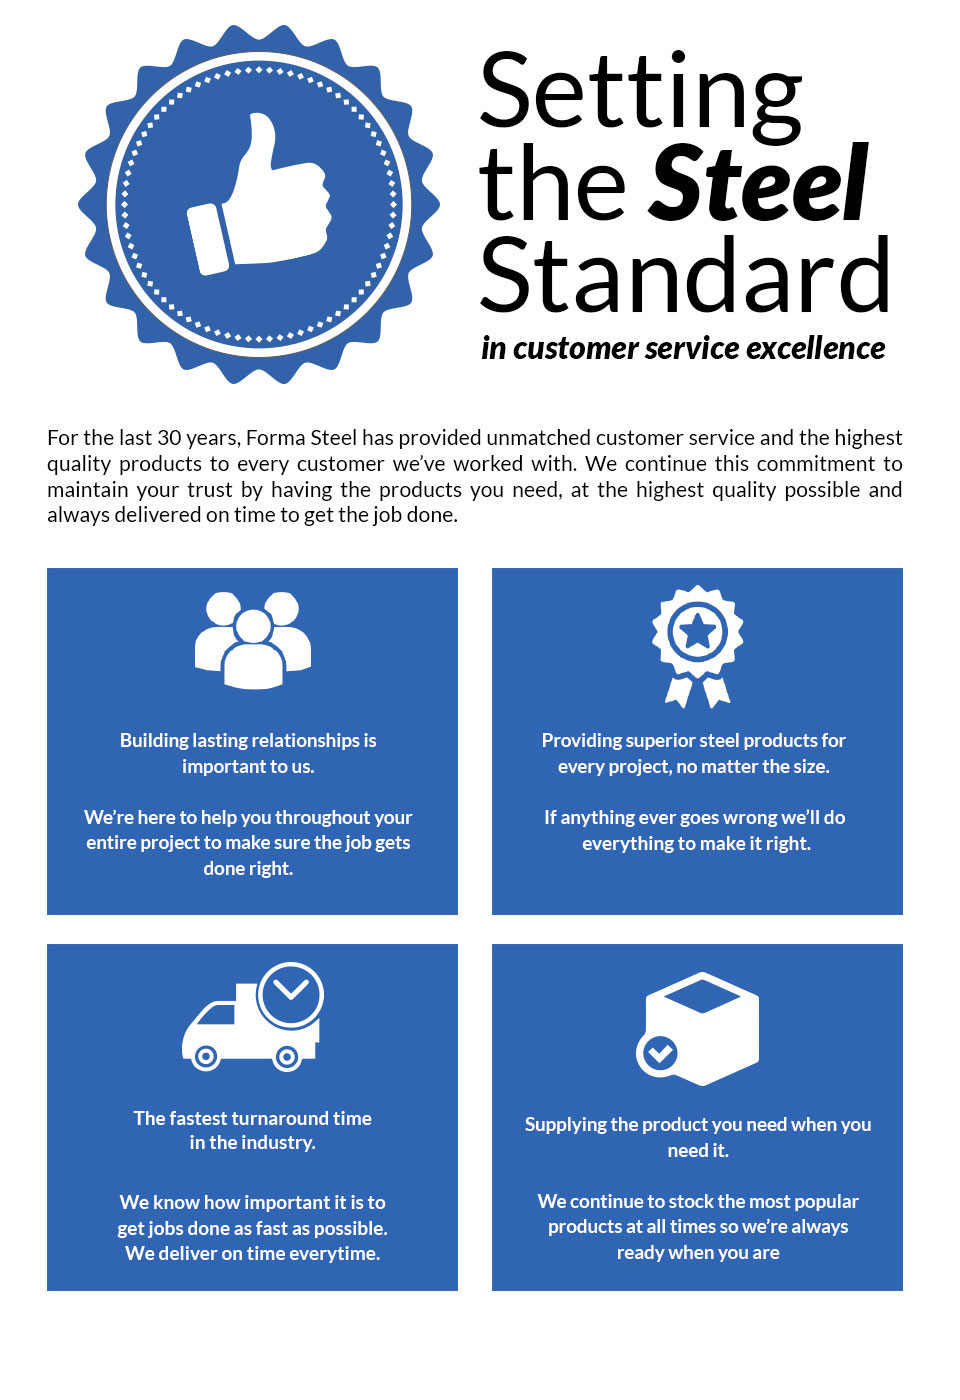 Setting the Steel Standard in Customer Service Excellence